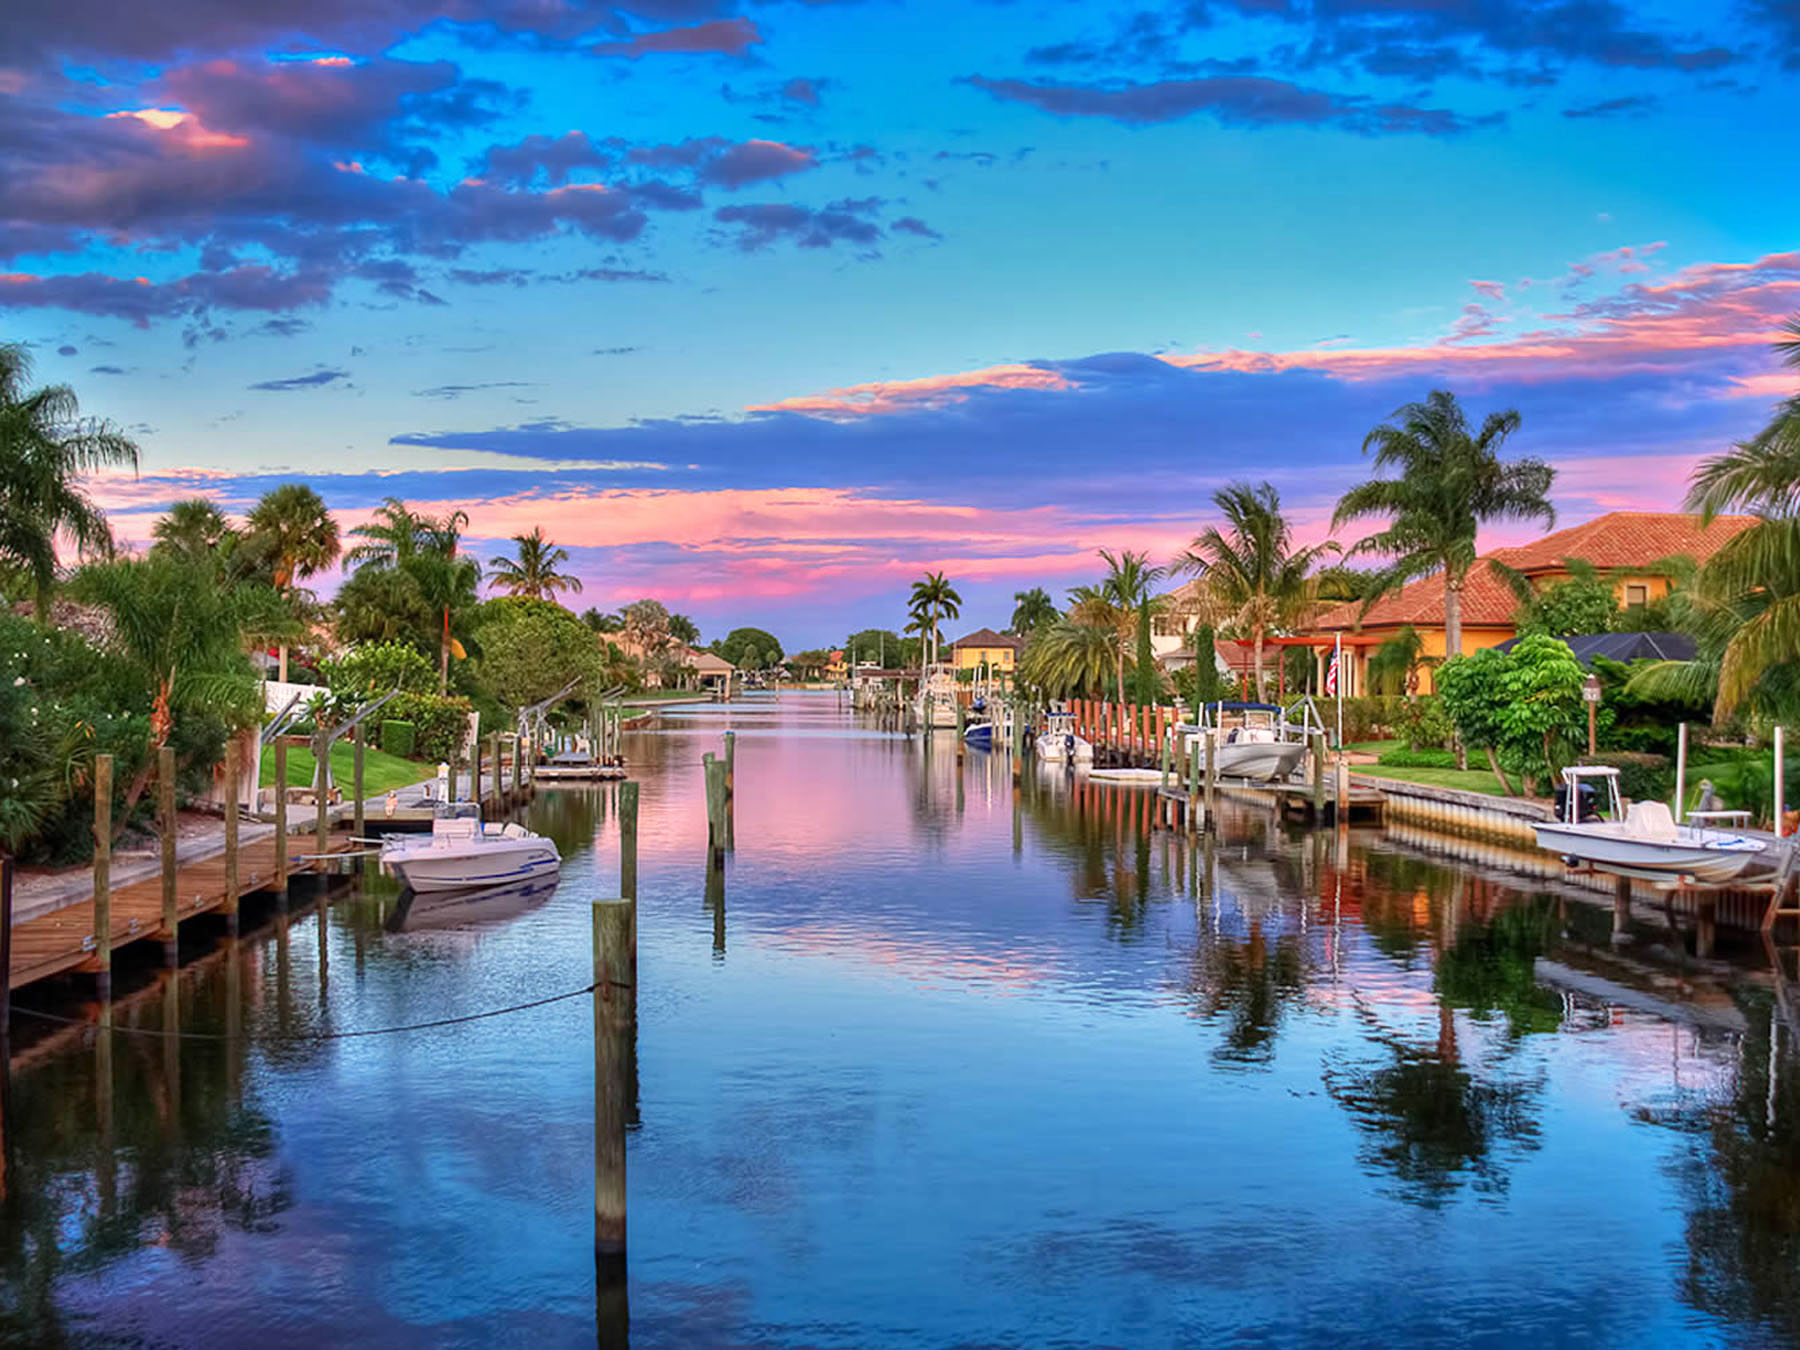 South Florida makes for a gorgeous getaway